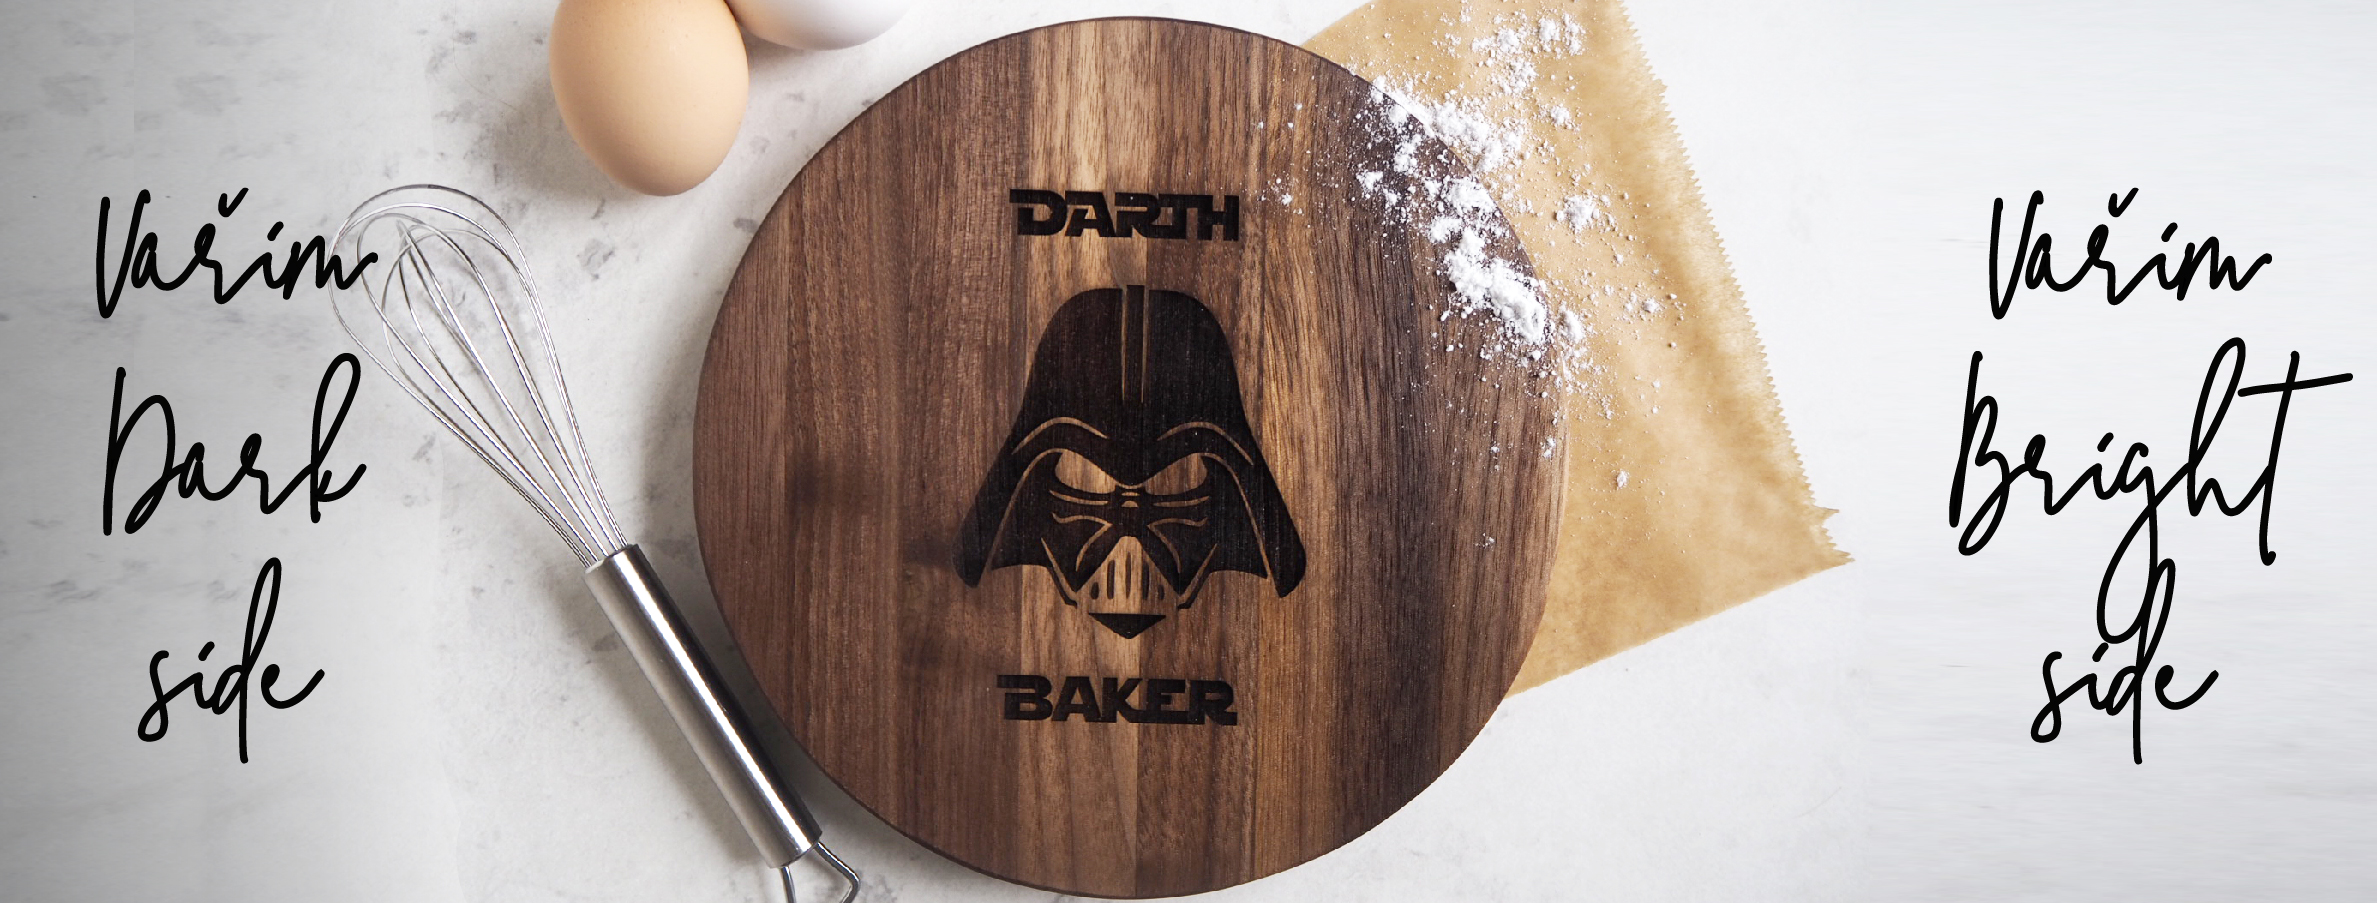 Darth Baker